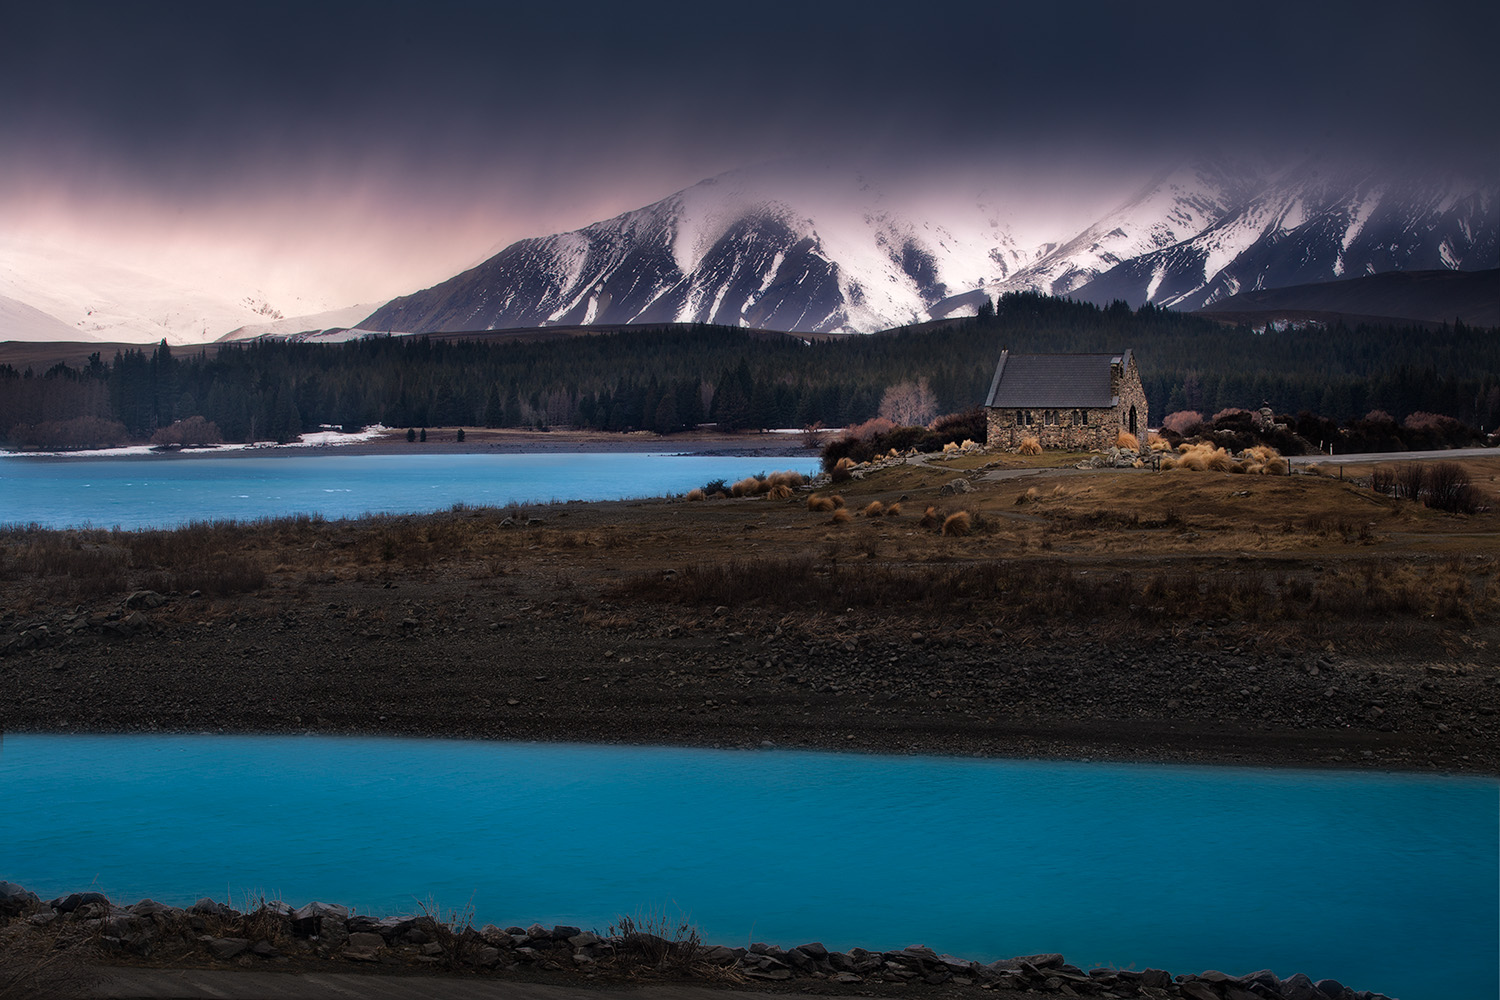 Landscape Photography Workshop Tour - The Church of the Good Shepherd, Lake Tekapo, New Zealand, Fine Art Print by Viva Karolina